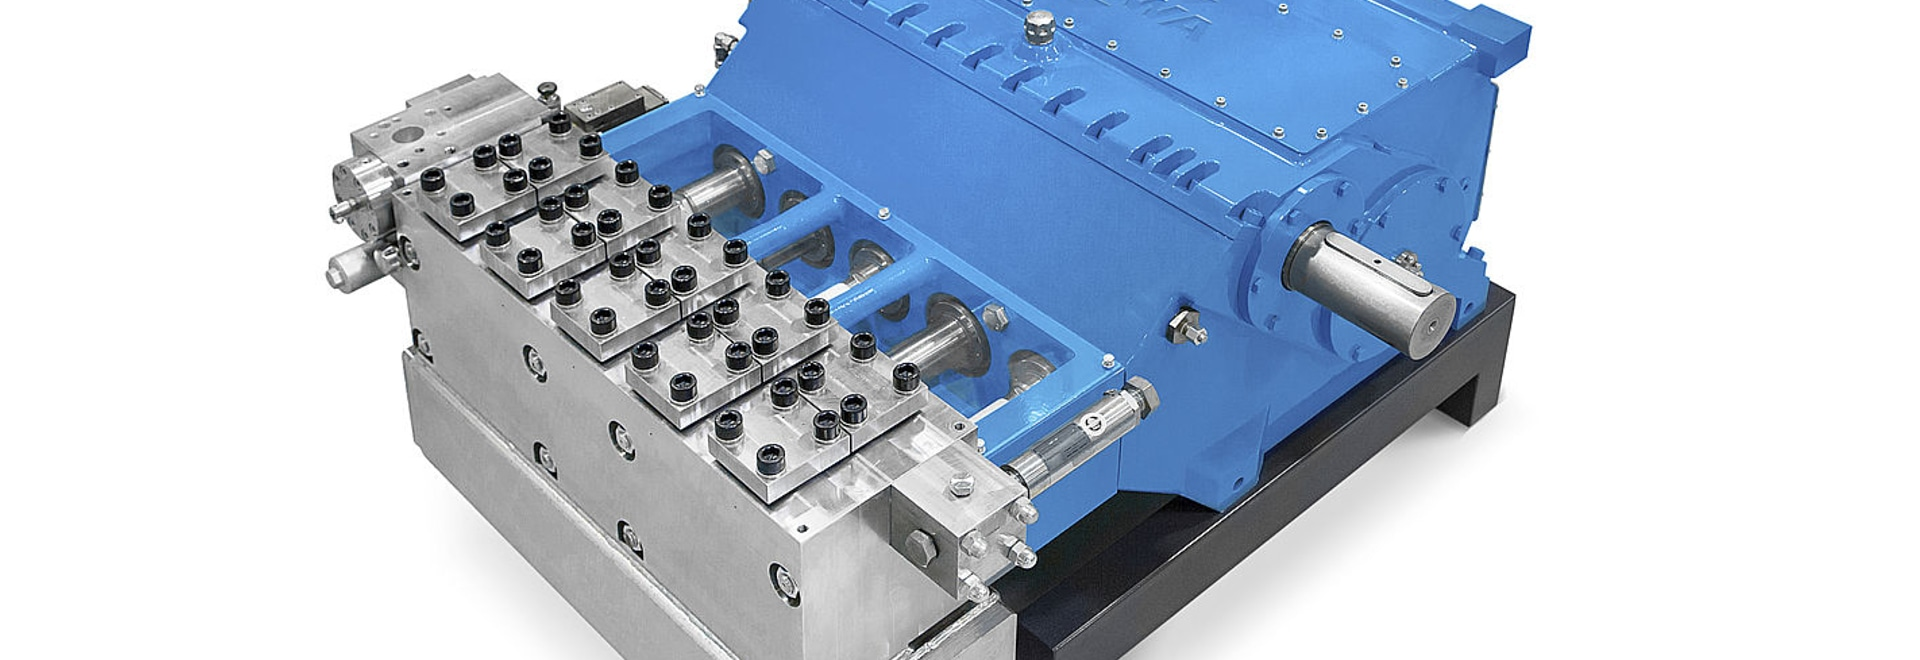 New design for plunger pump: splitted gear box and improved maintenance possibilities